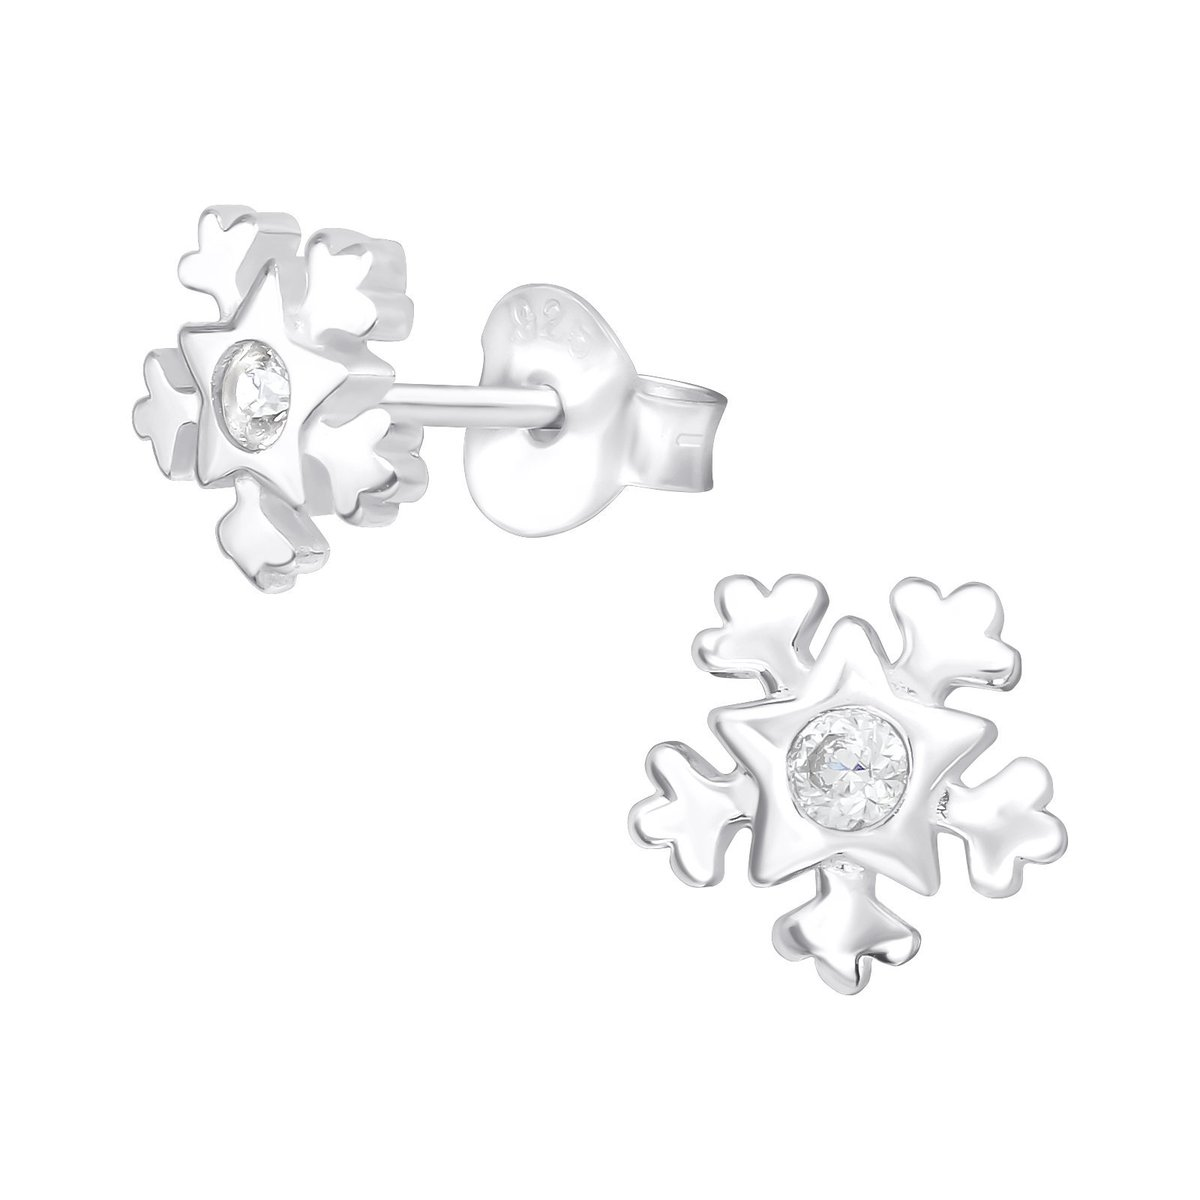 These popular beauties are now back in stock!  Get yours before the sell out again!  Silver Snowflake Ear Studs https://t.co/noNAQkChta #silver #kidsearrings #backinstock #czcrystal #nickelfree  #girls #jewelry #newarrivals #childrenearrings #fashion #faves #musthaves https://t.co/ui1rDSk9di